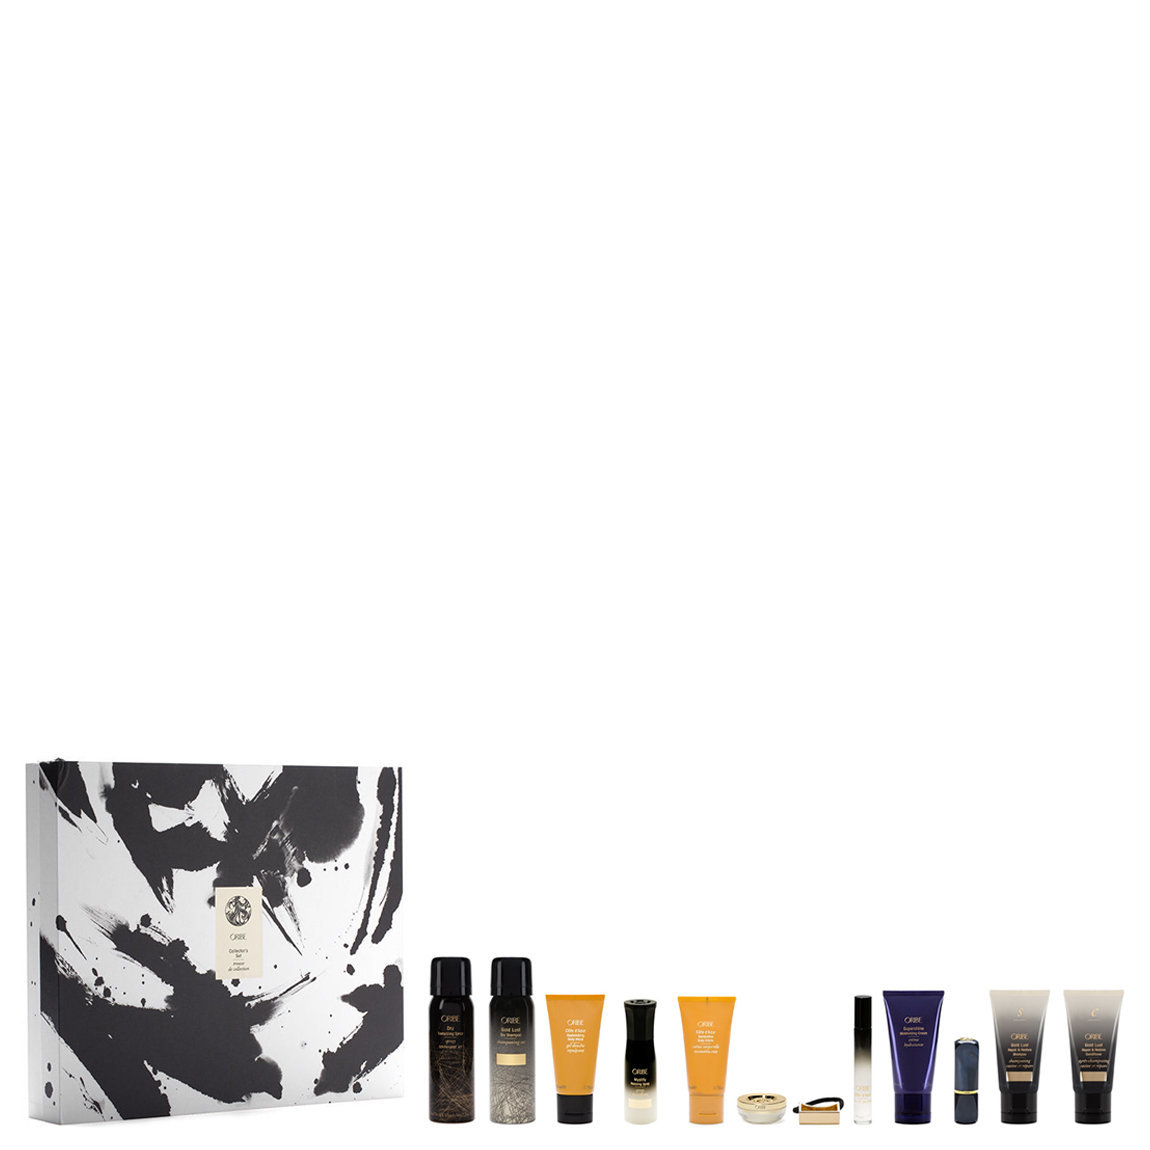 Oribe Collector's Set product swatch.